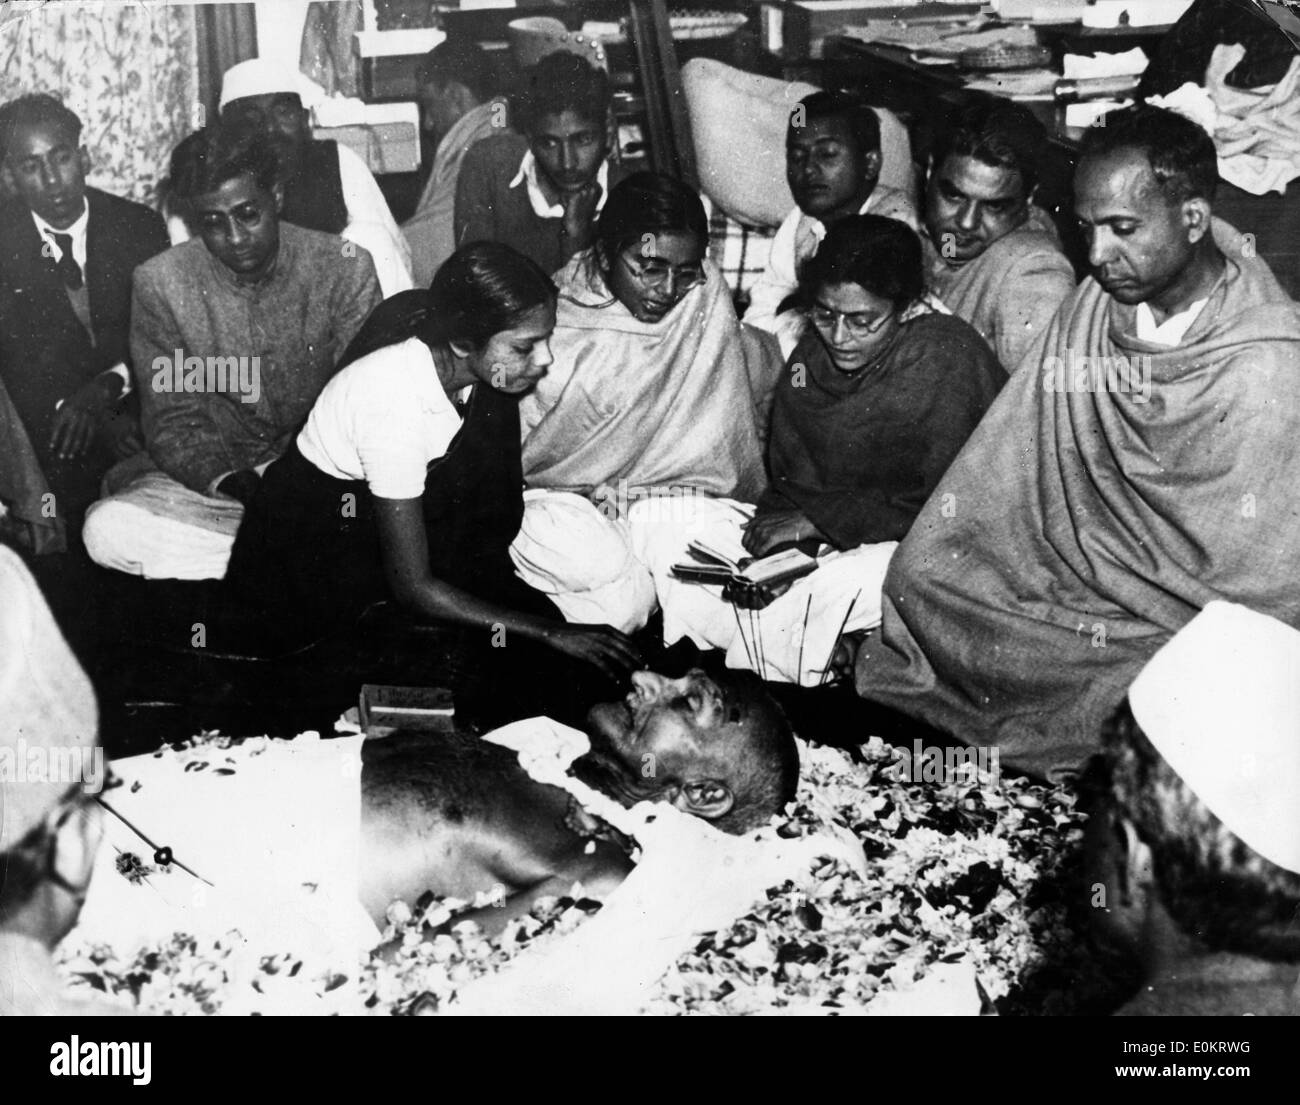 A neice of Mahatma Gandhi places flowers after his assassination at Birla House - Stock Image